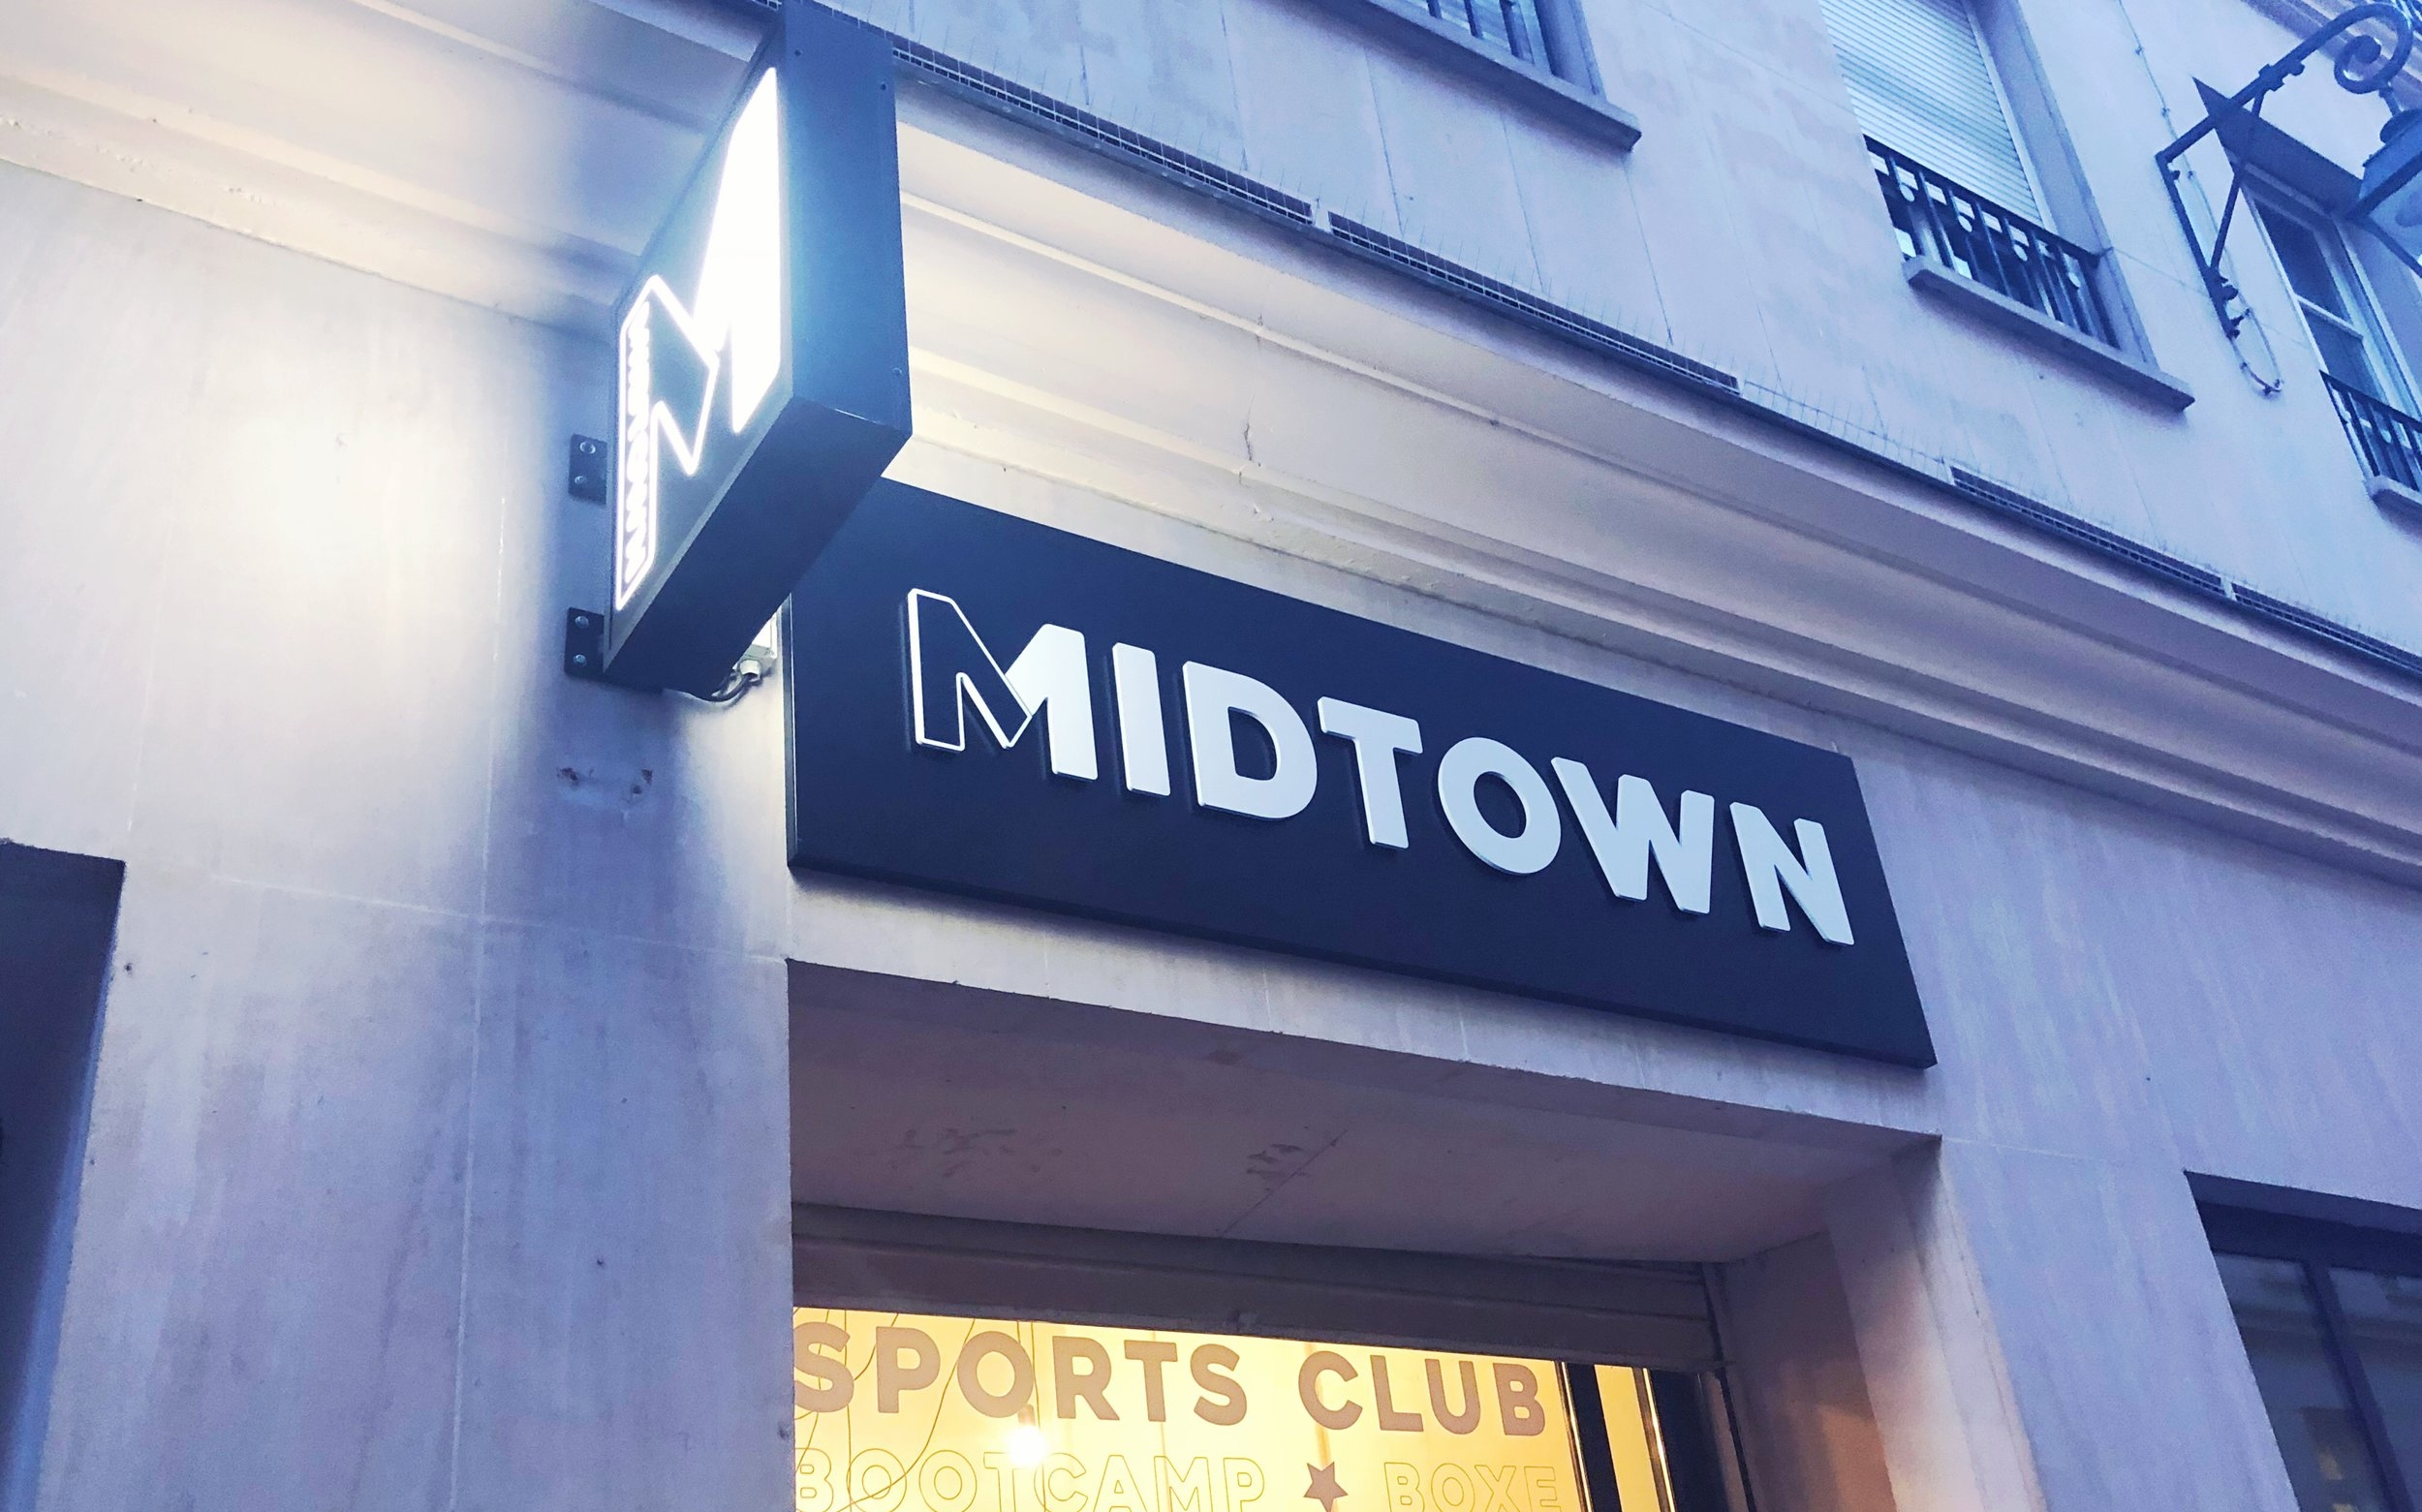 Midtown bootcamp studio in Paris, France.